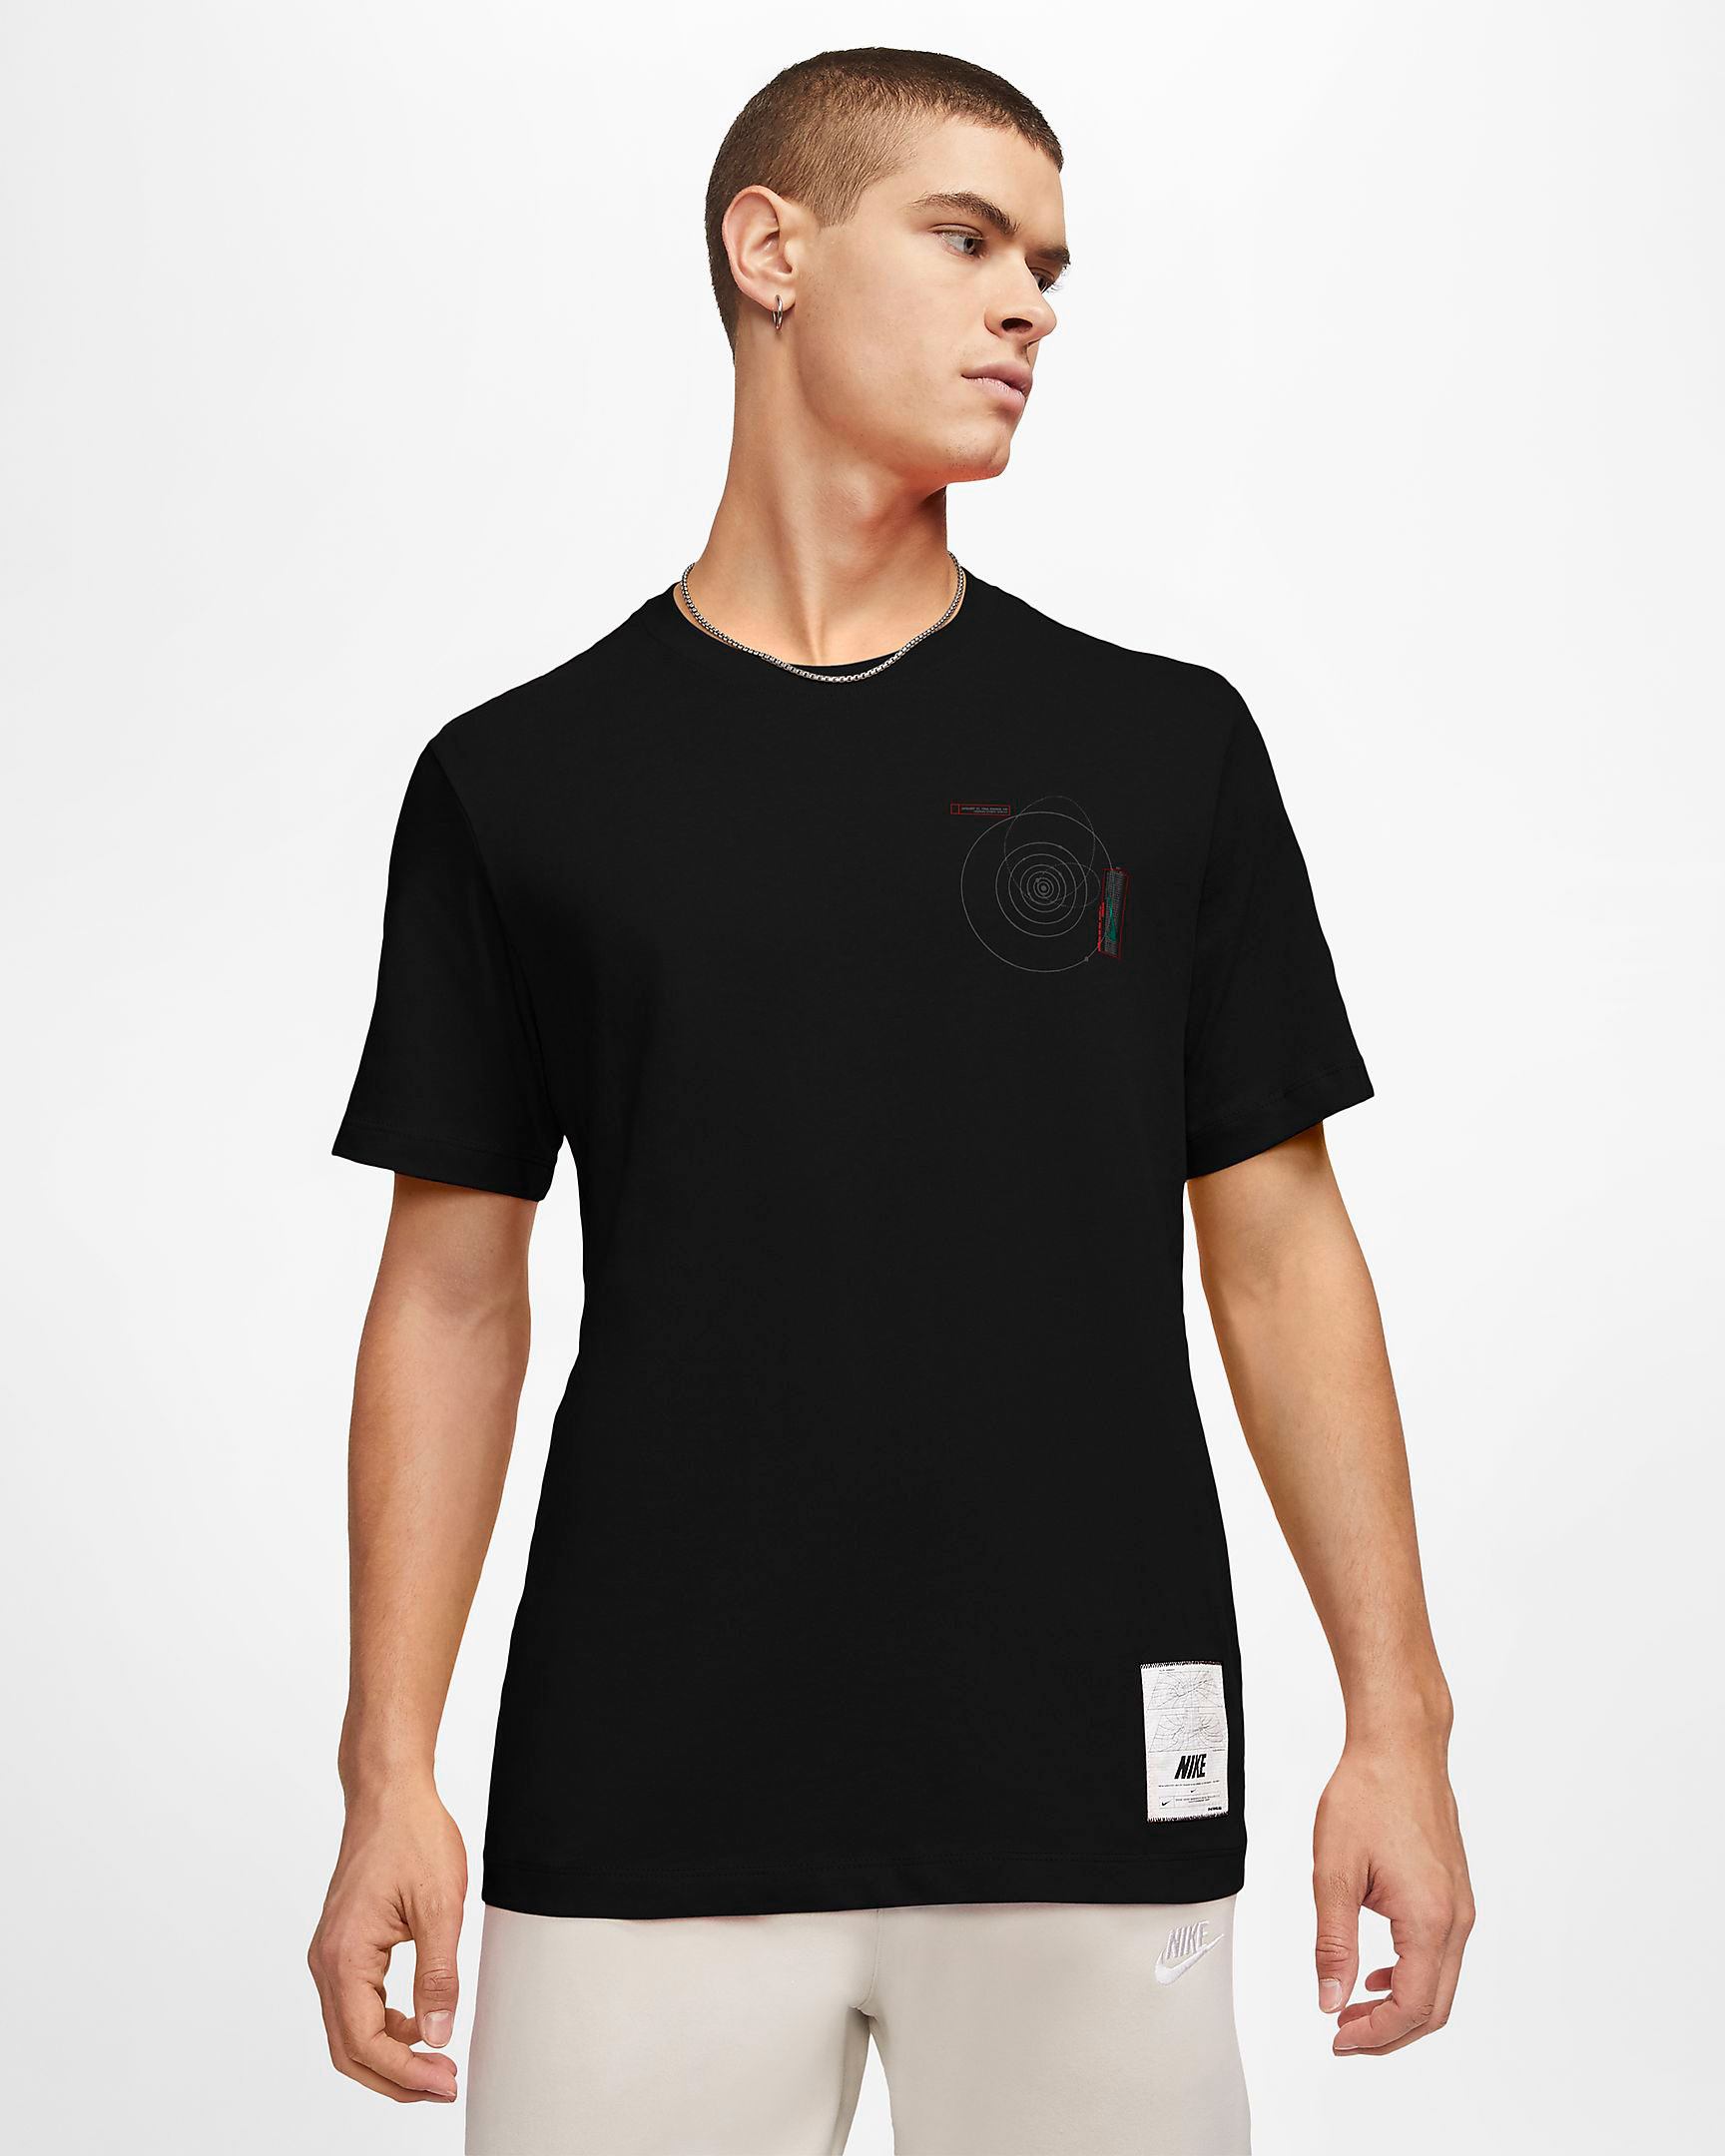 nike-supernova-shirt-black-1